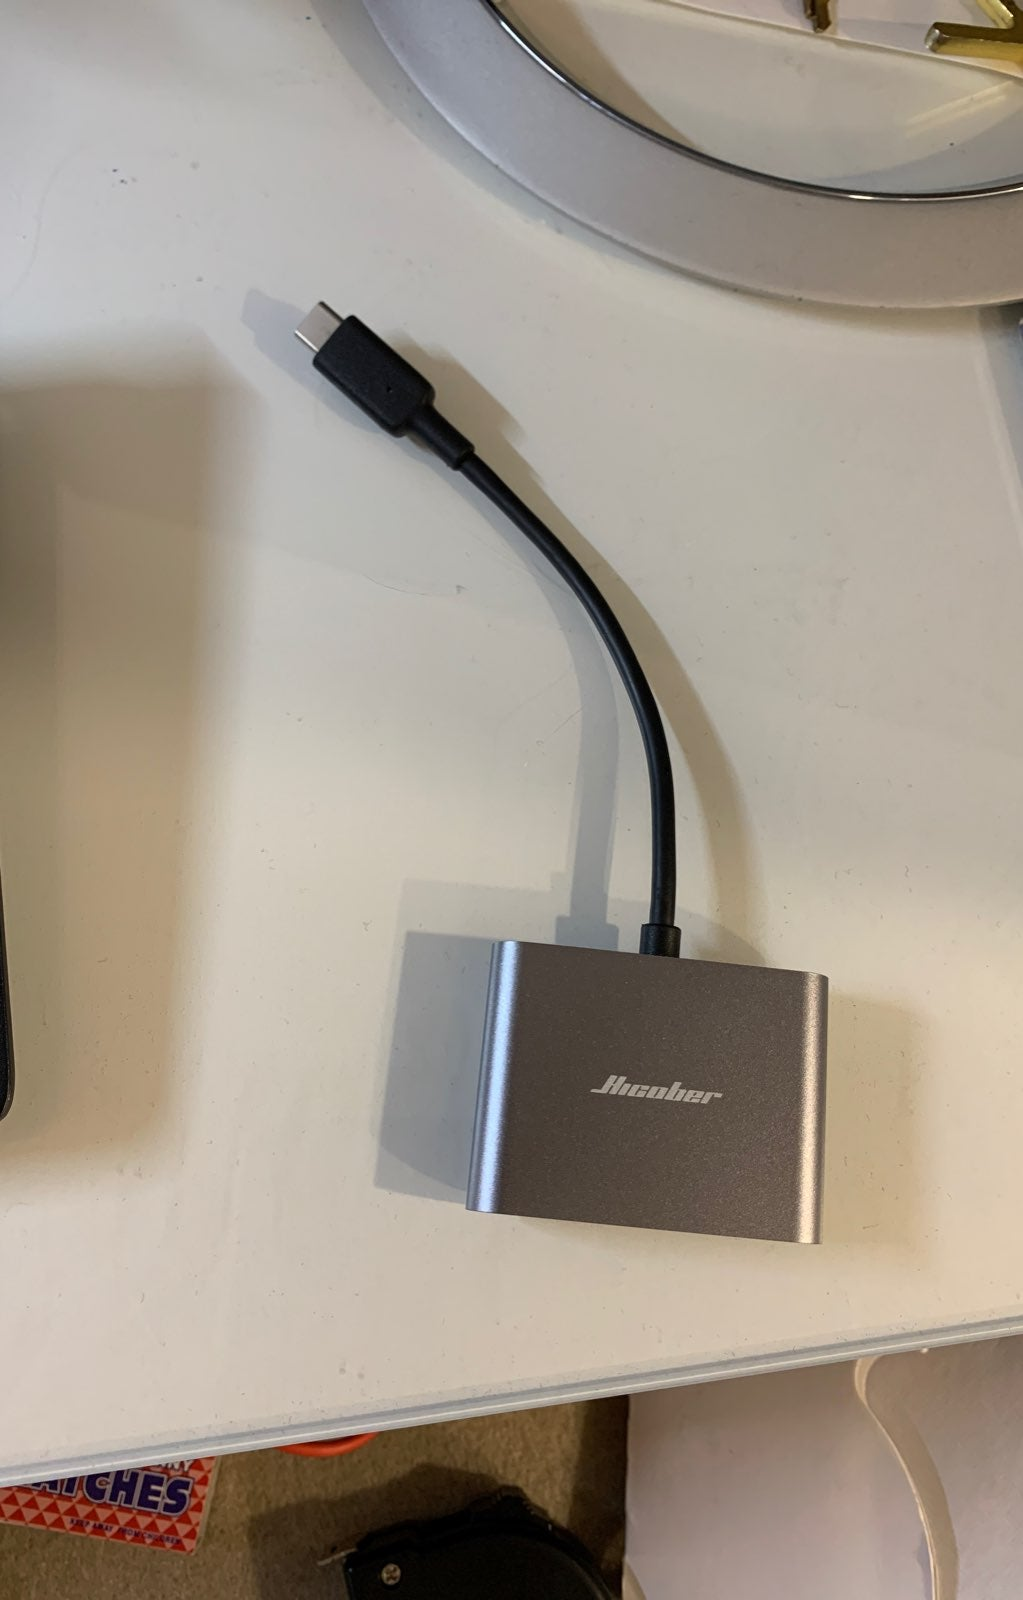 Higober USB-C to SD reader